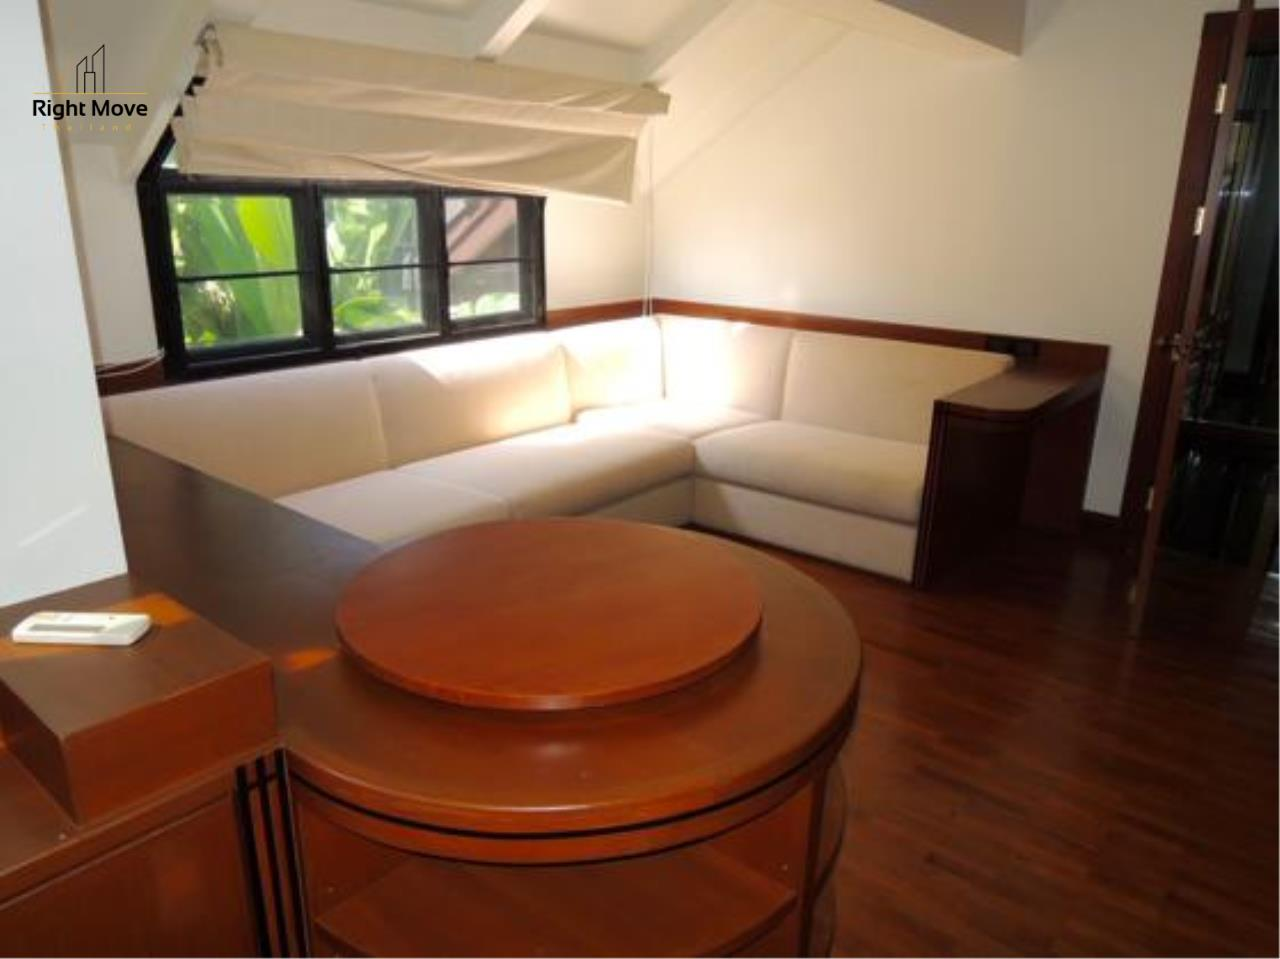 Right Move Thailand Agency's HR663 House With Private Pool For Rent 350,000 THB 4 Bedrooms 1000 Sqm 22